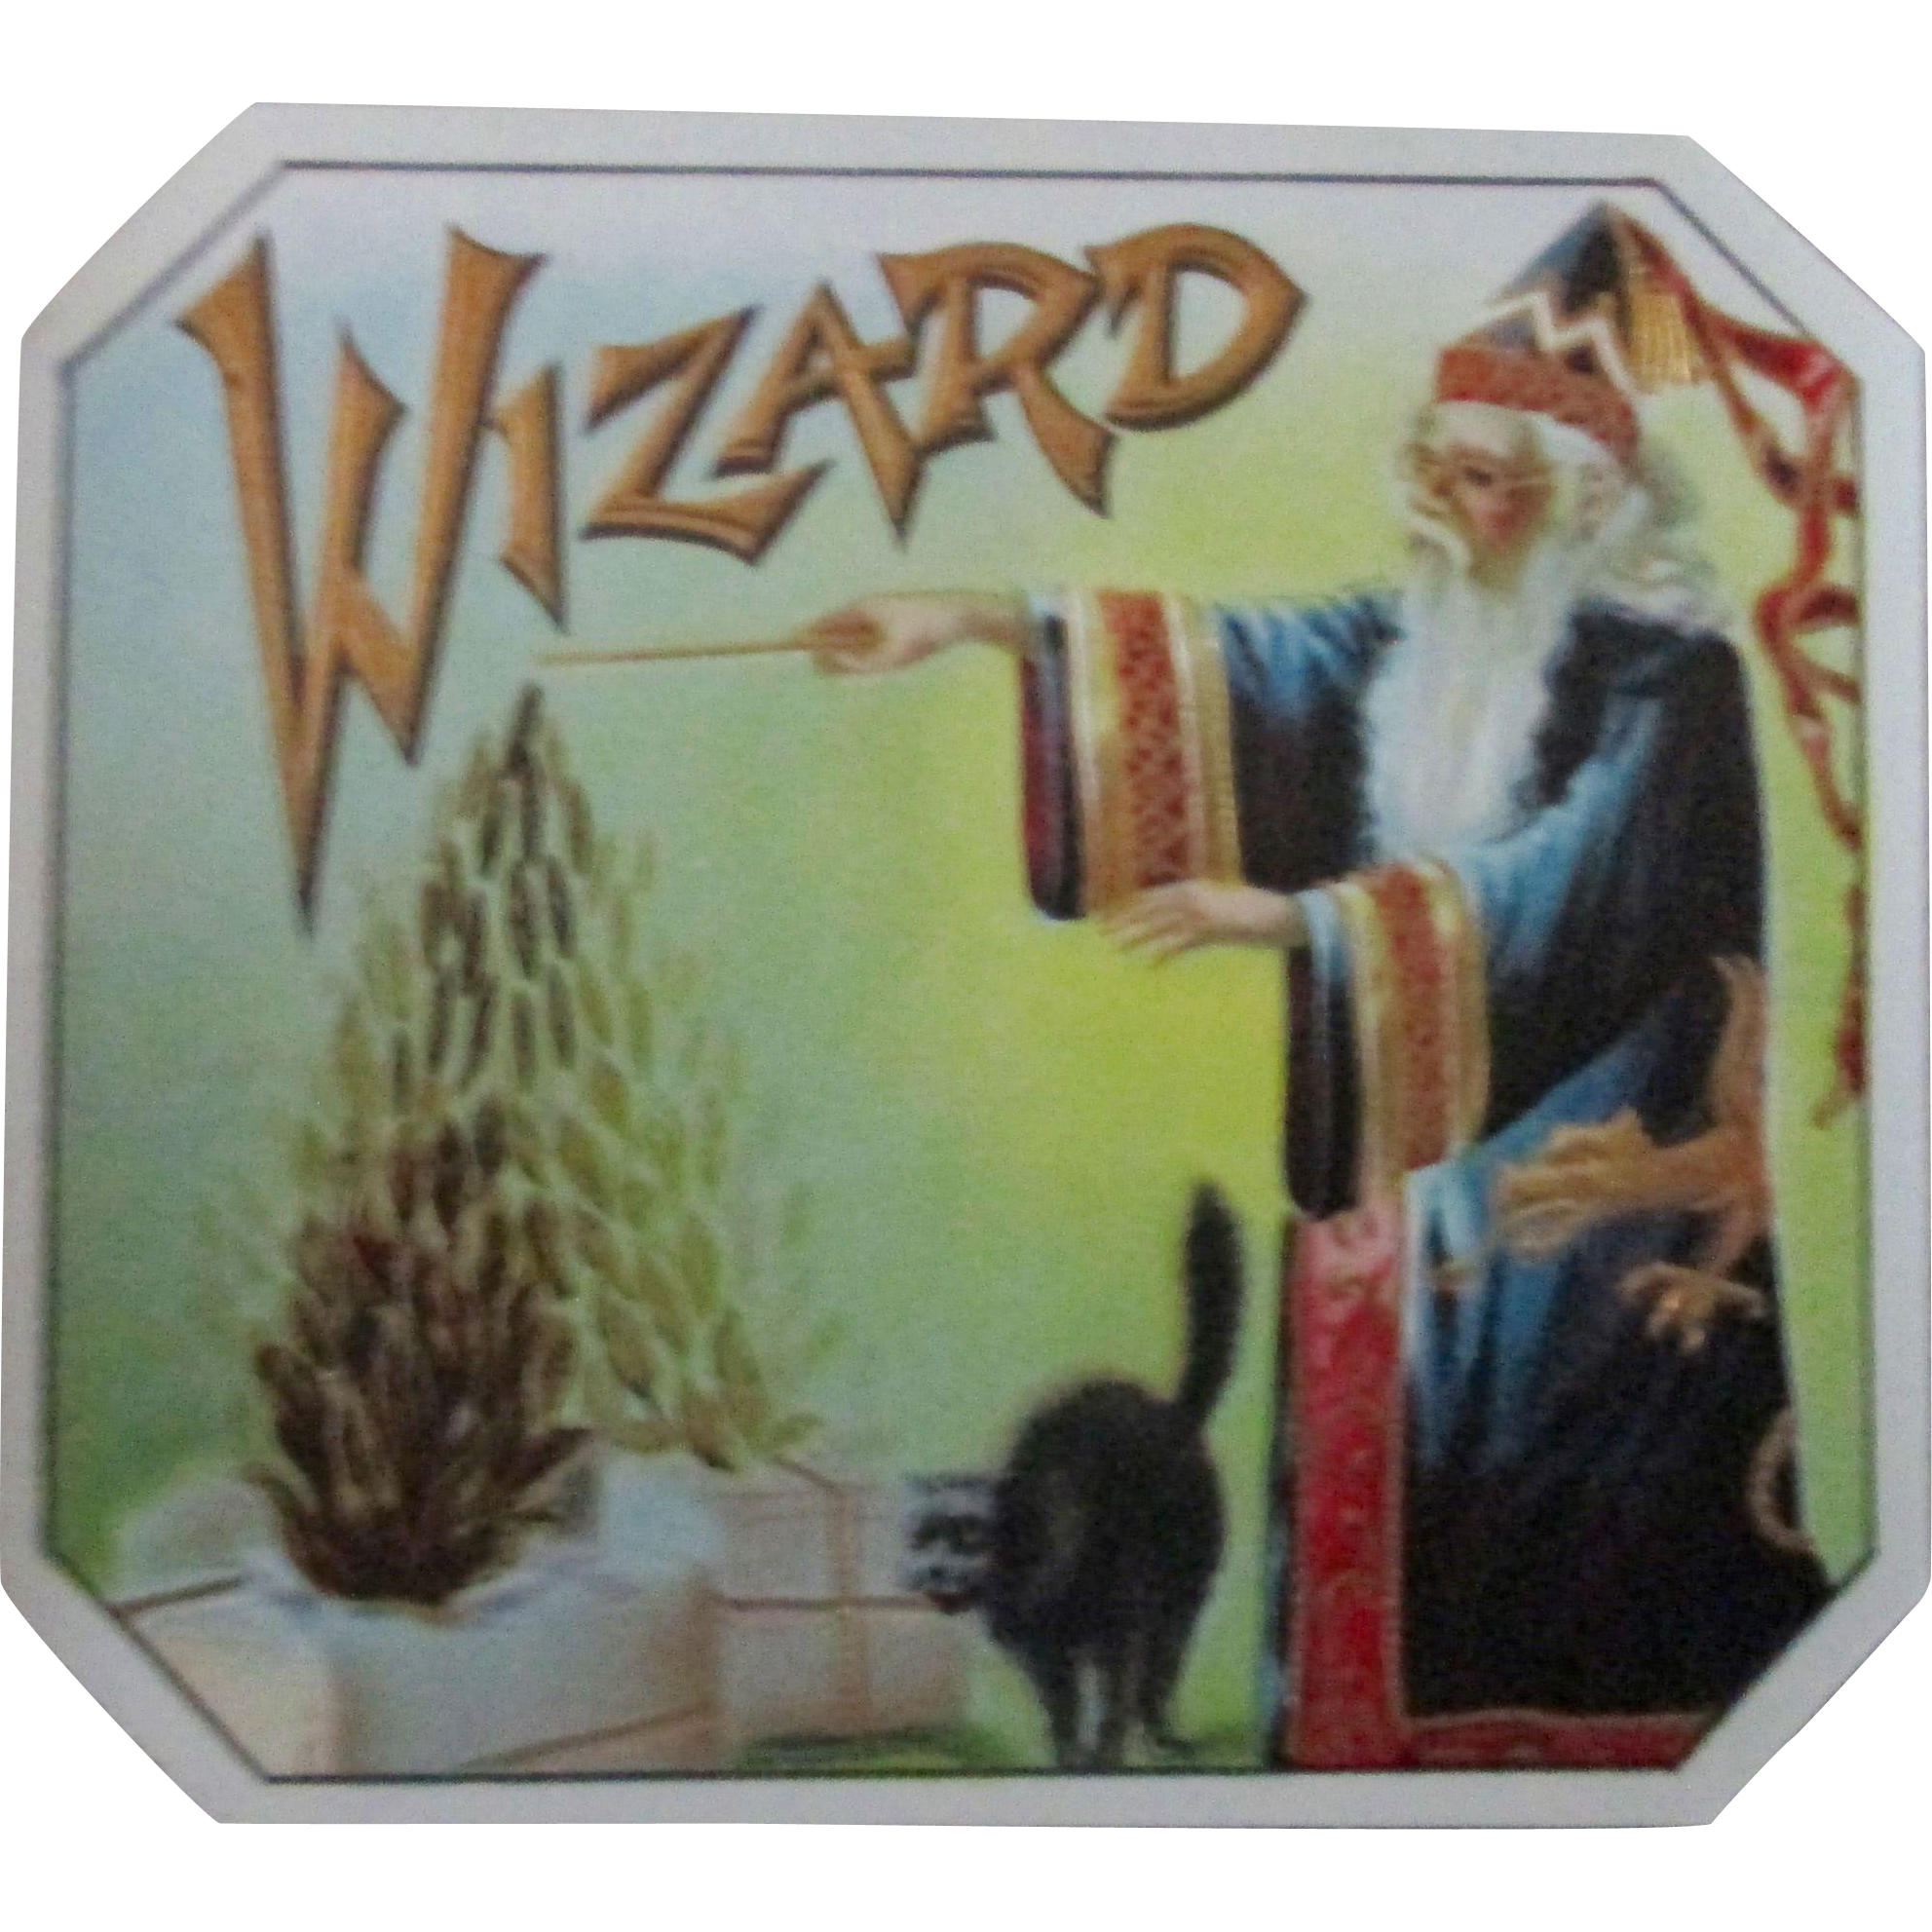 Tobacco embossed WIZARD near mint cigar label early 1900's